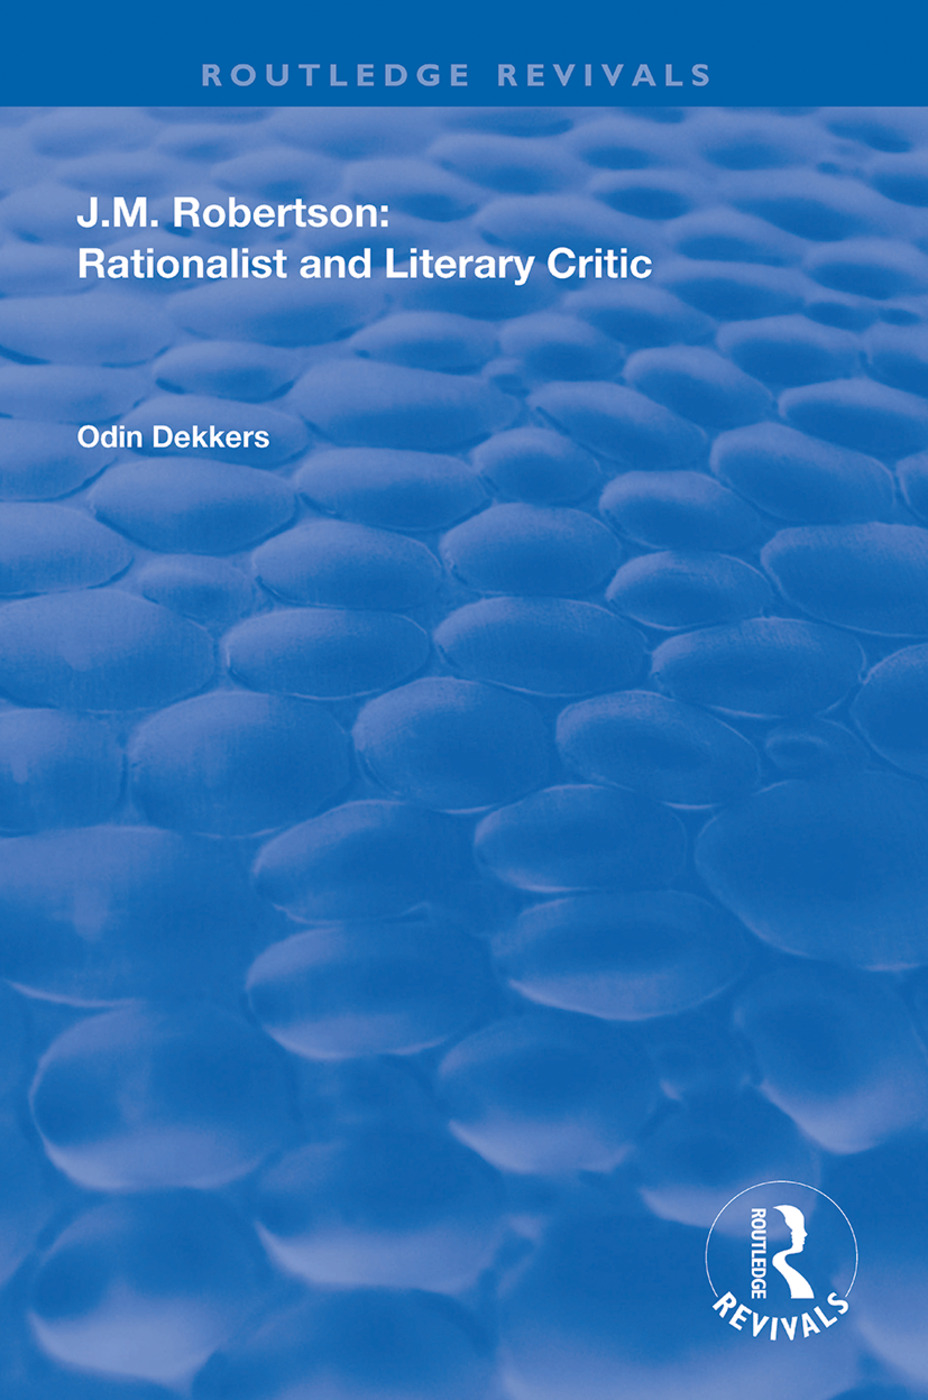 J.M. Robertson: Rationalist and Literary Critic book cover